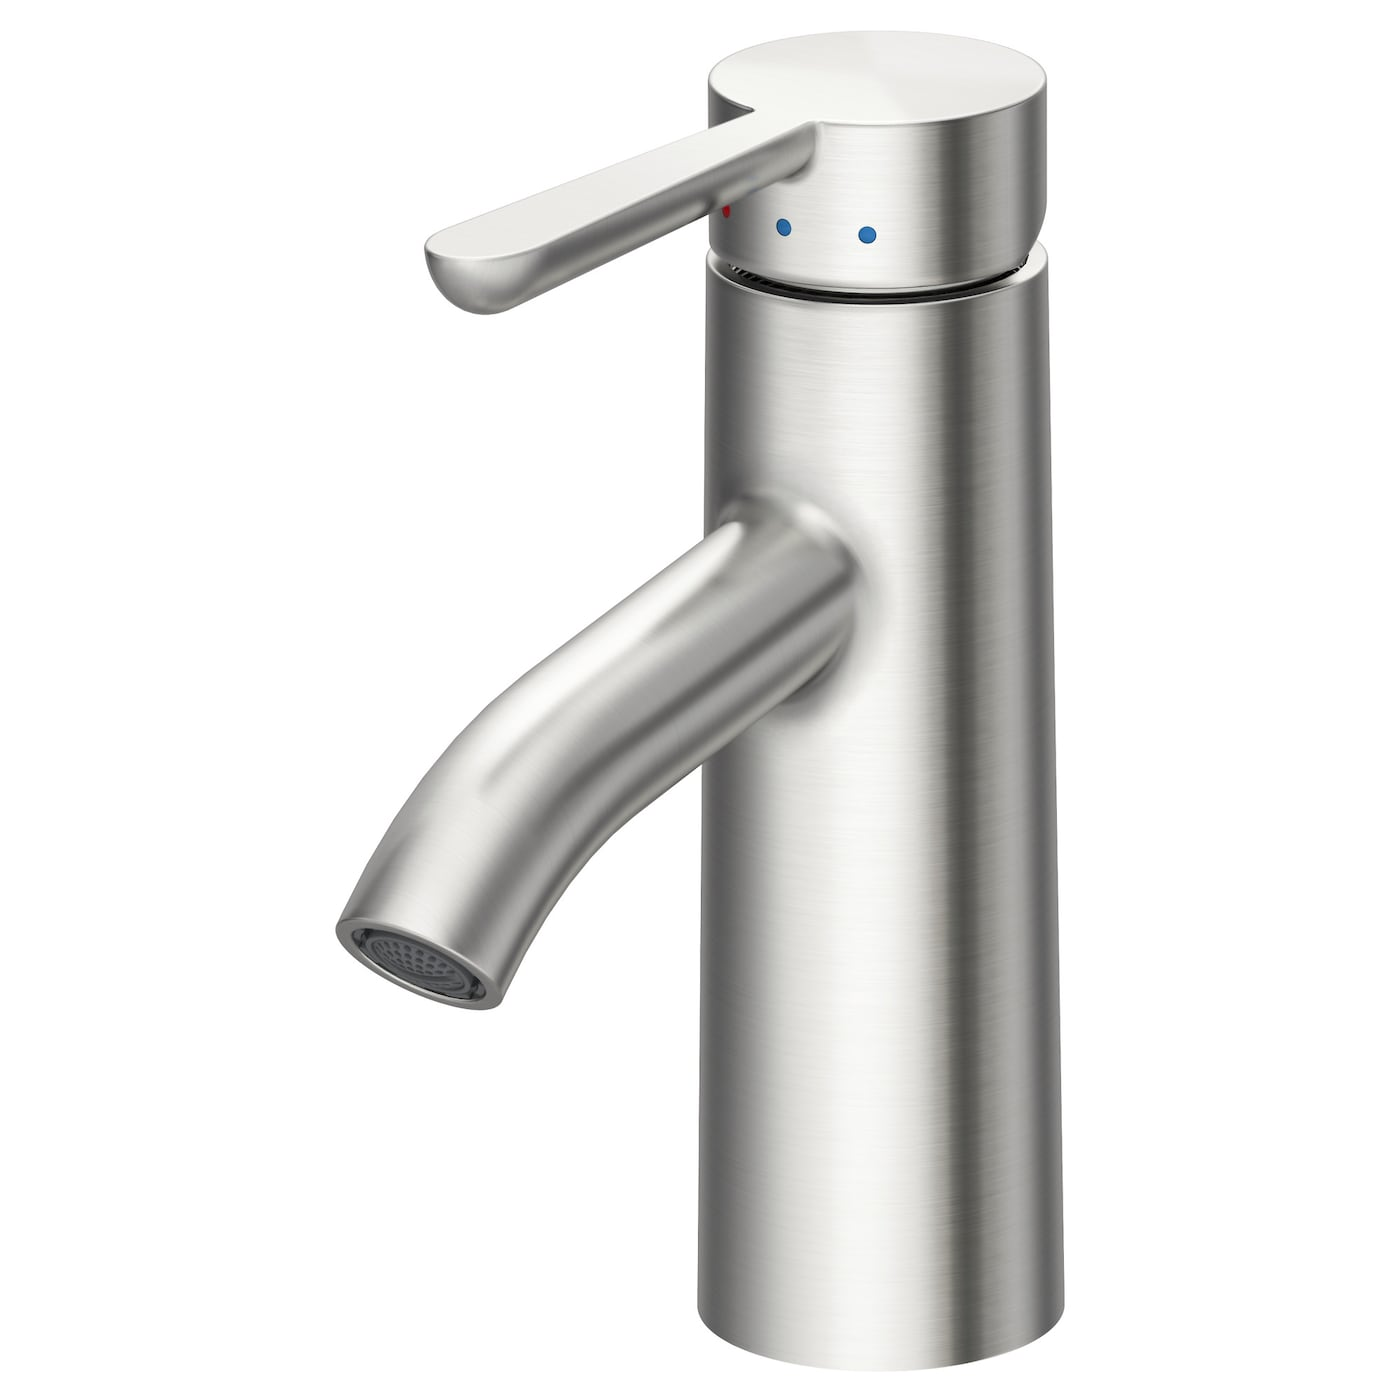 Dalsk r wash basin mixer tap with strainer stainless steel for Robinet salle de bain ikea